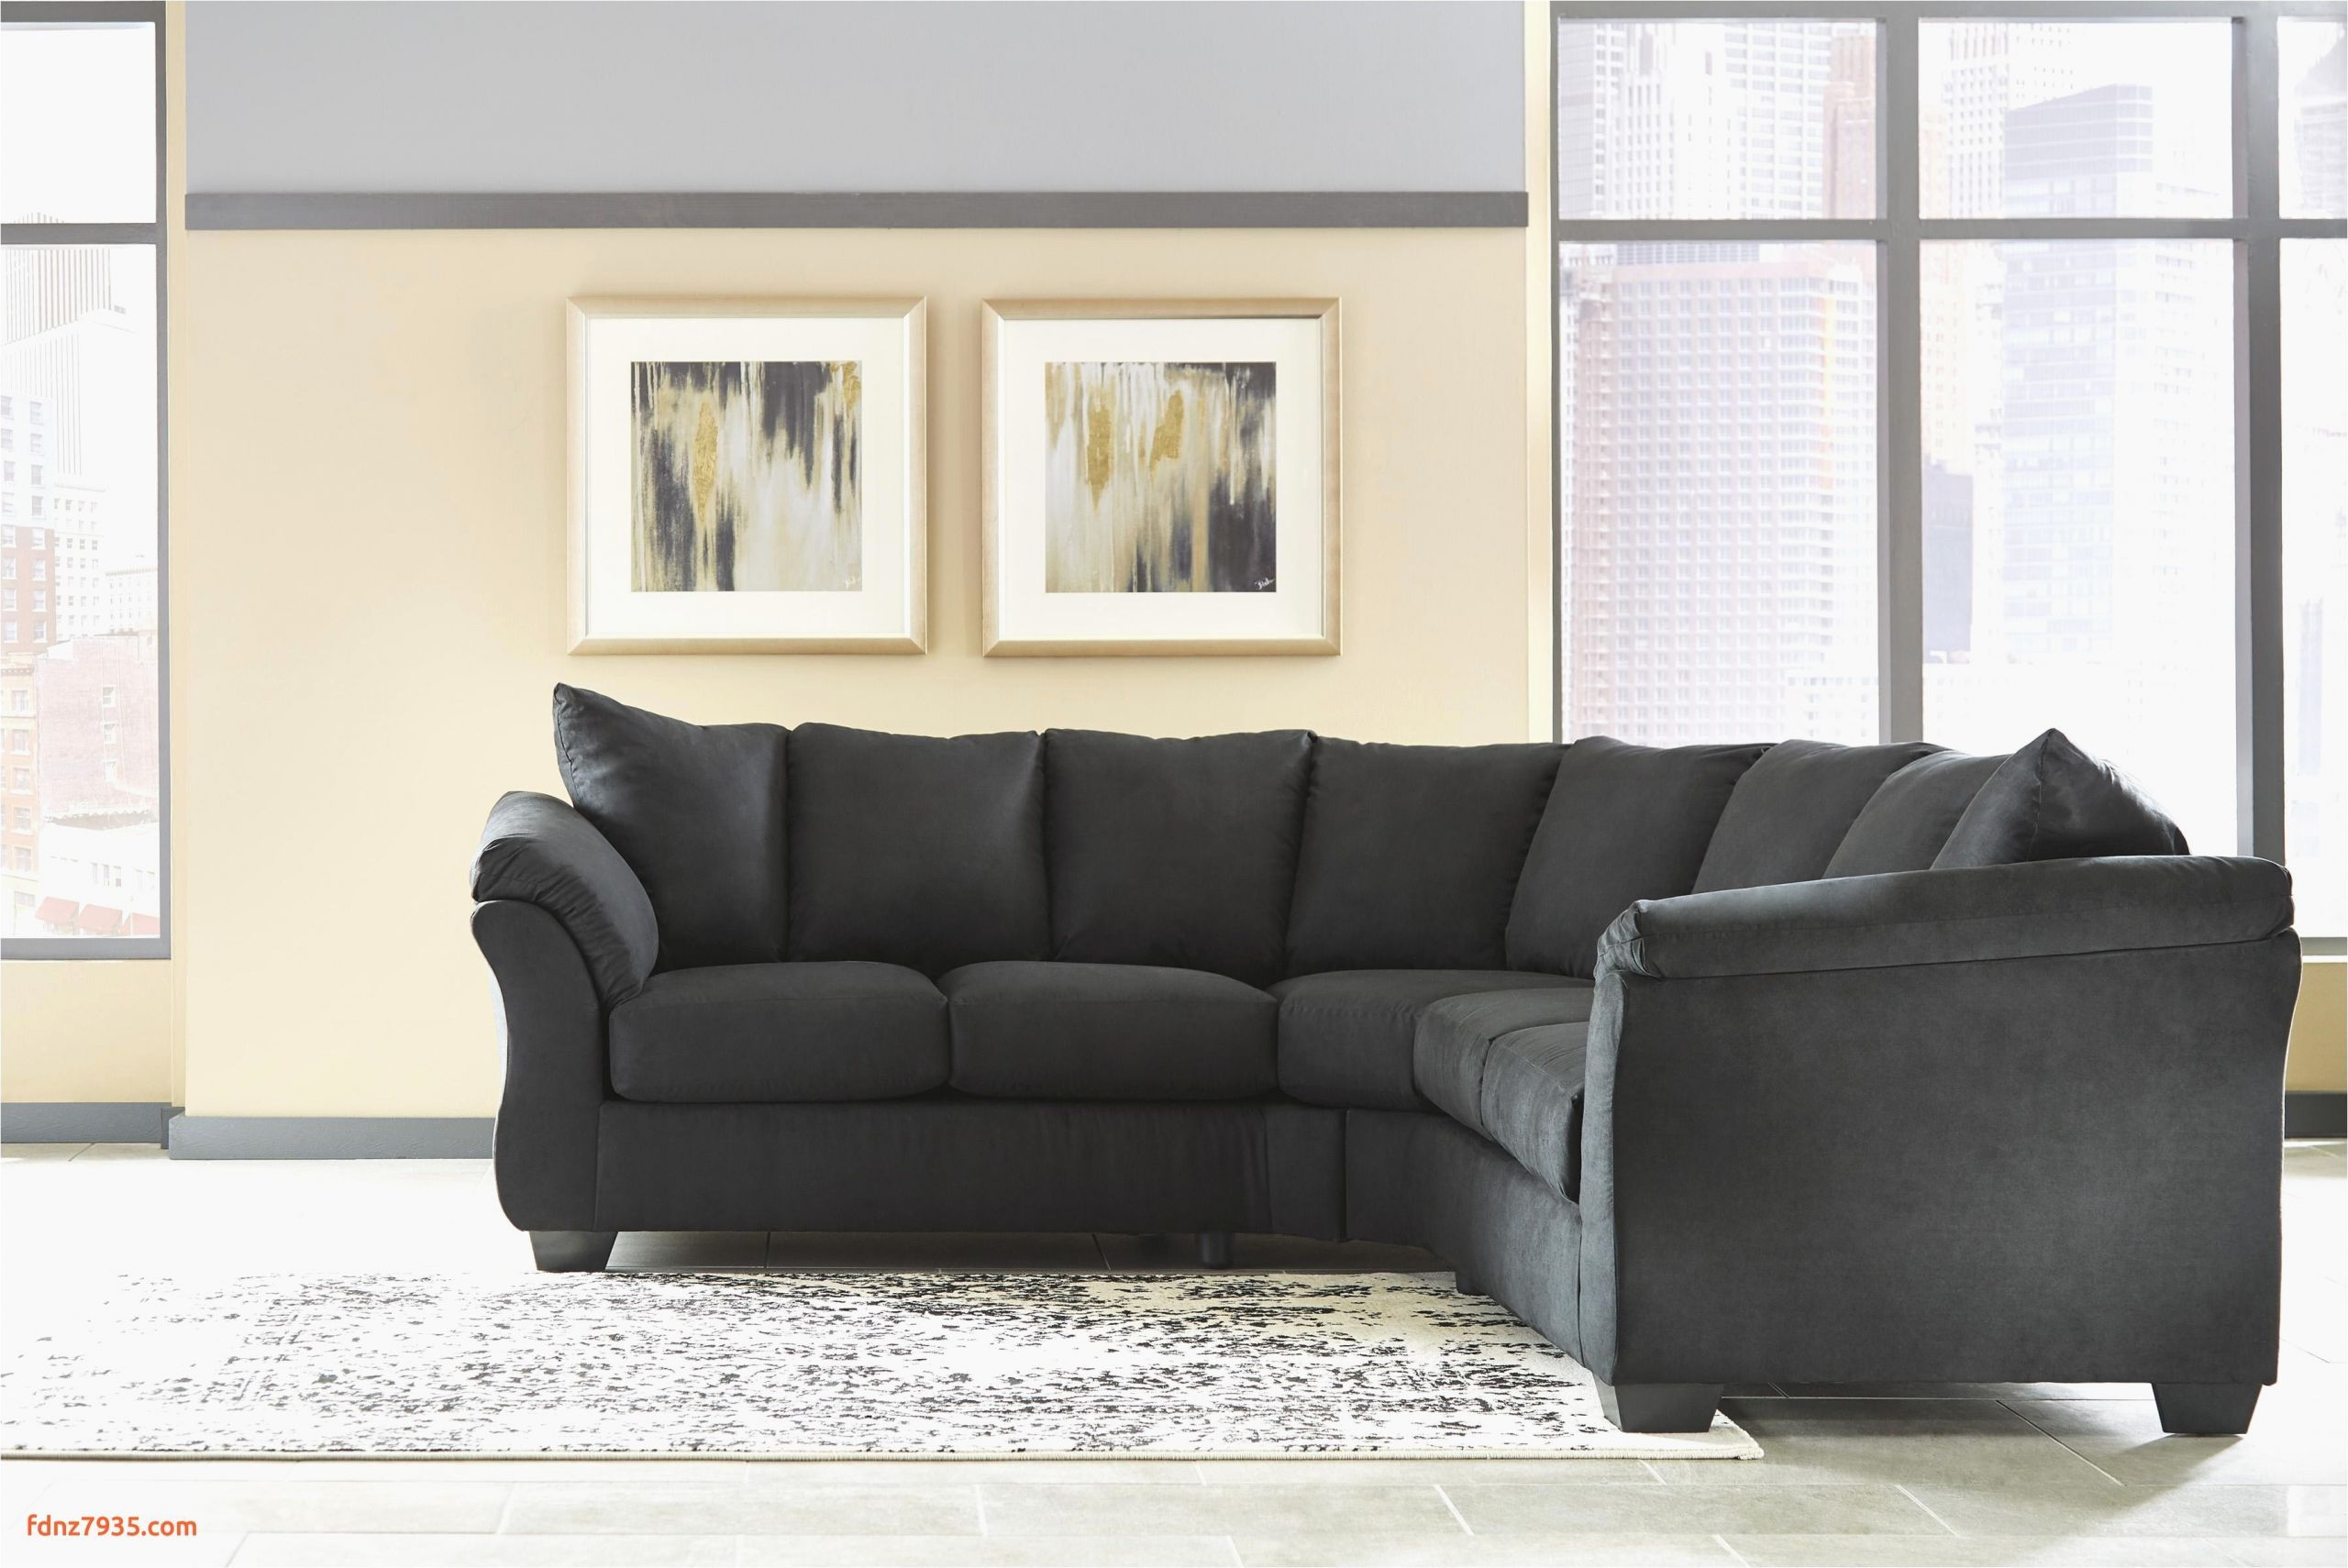 Choosing Leather Sectional Sofa Sleeper Might Be A Challenge There Are Many Factors To Consider From Color Size Shape Price How Comfo Di 2020 Rumah Sofa Slipcover